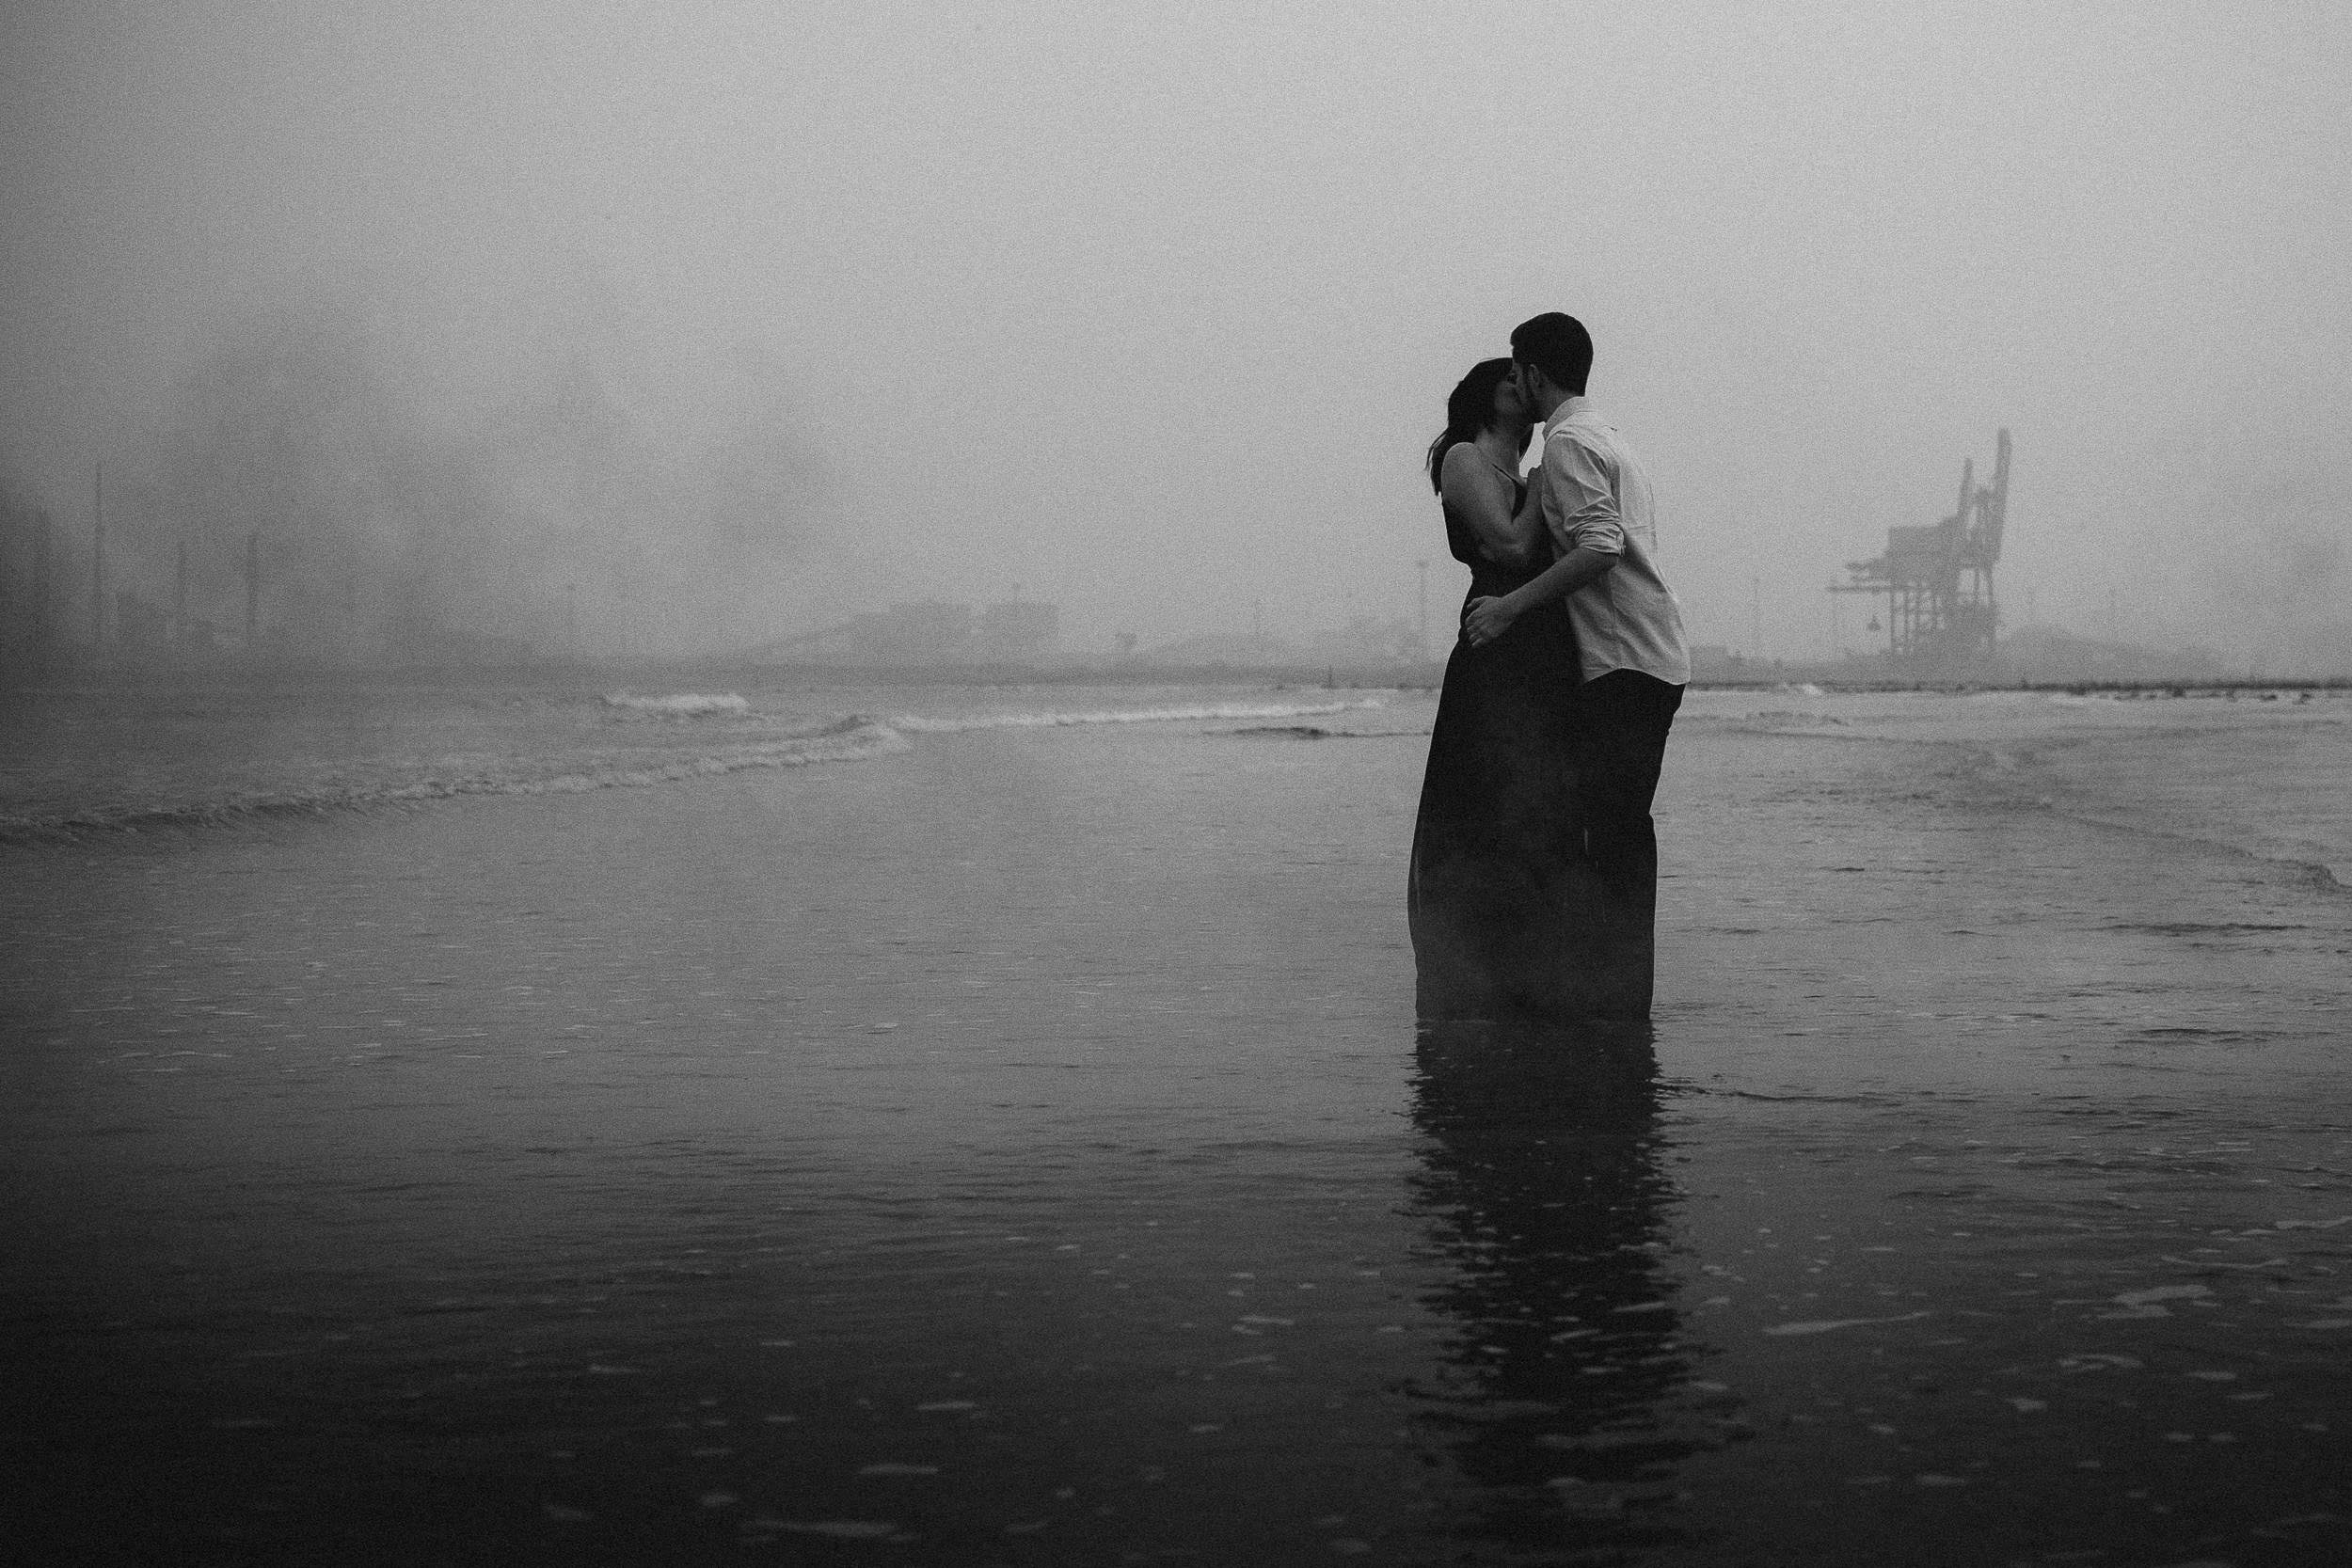 Couple embrace in a black and white photograph on an industrial beach with smoke and mist